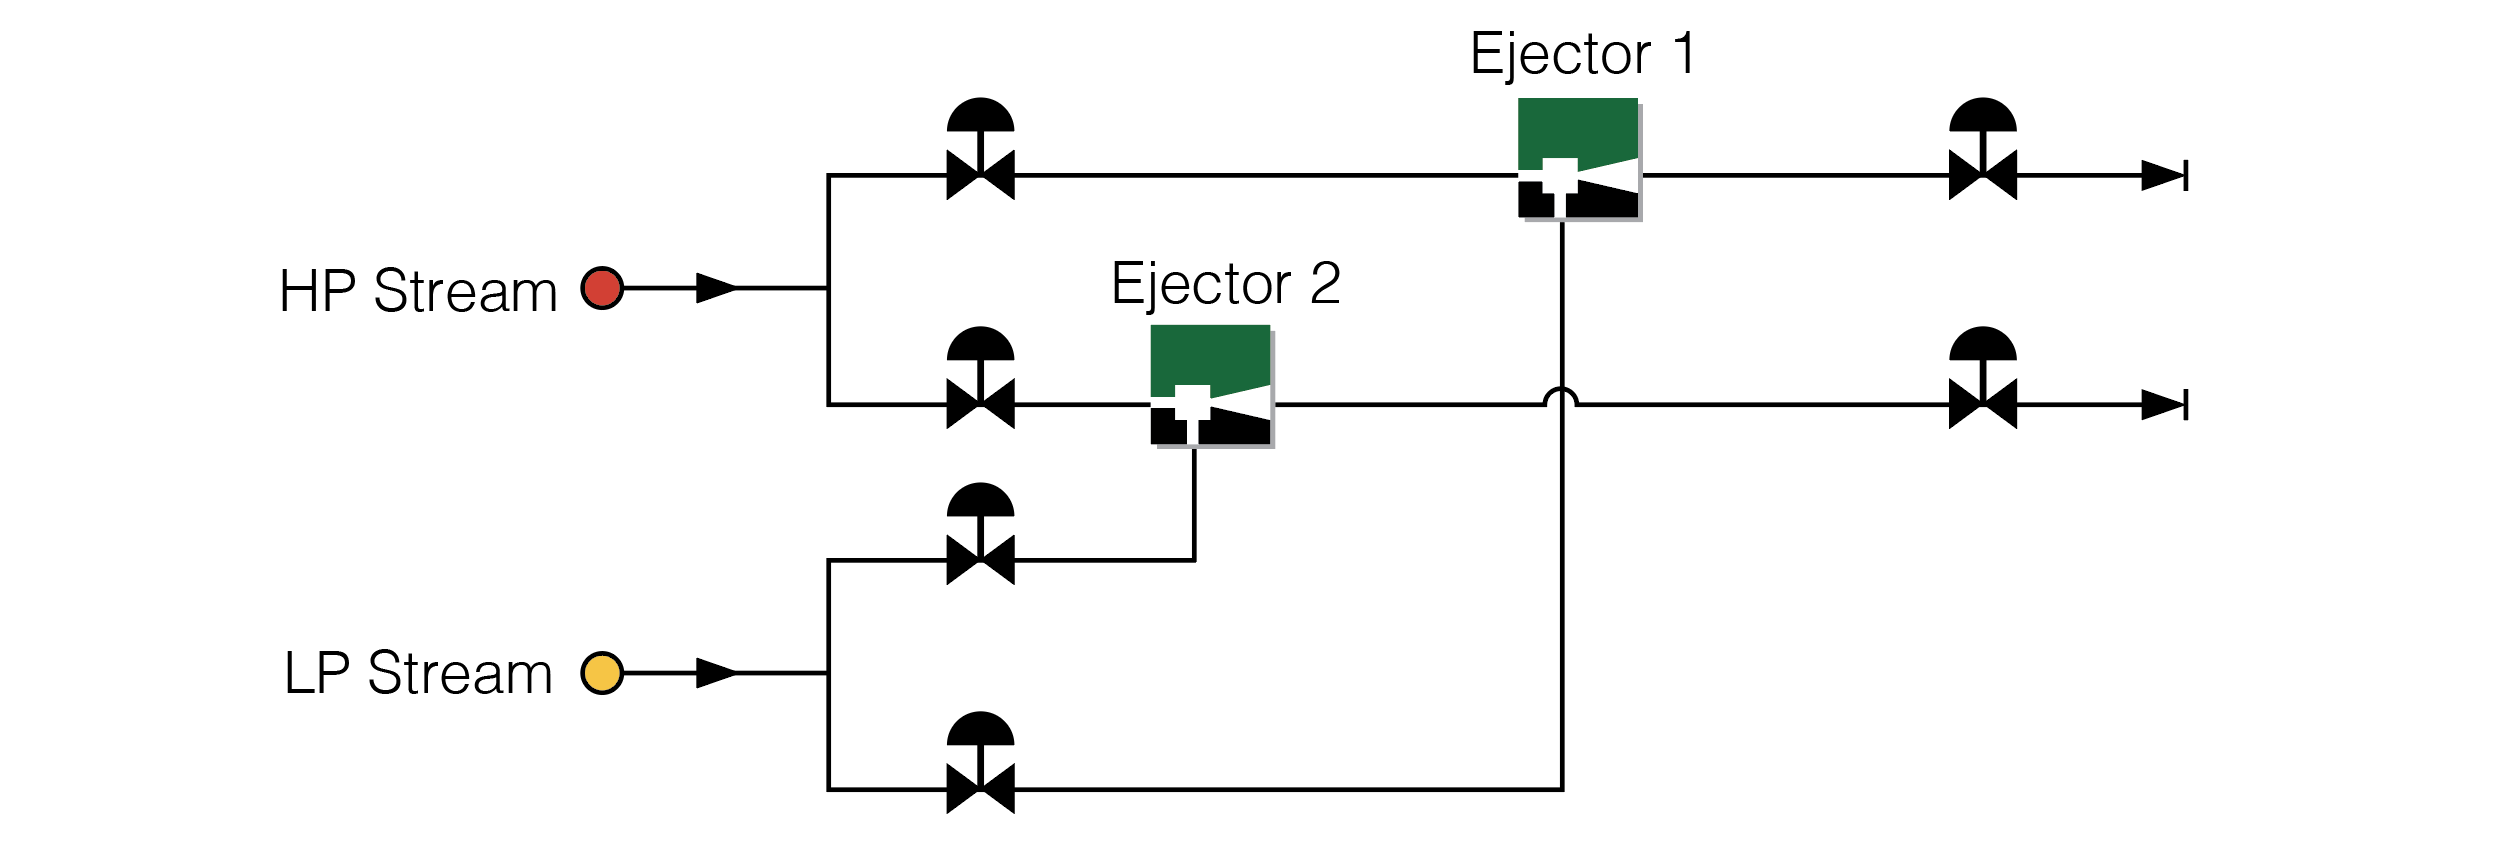 Ejector Control using Multiple Ejectors